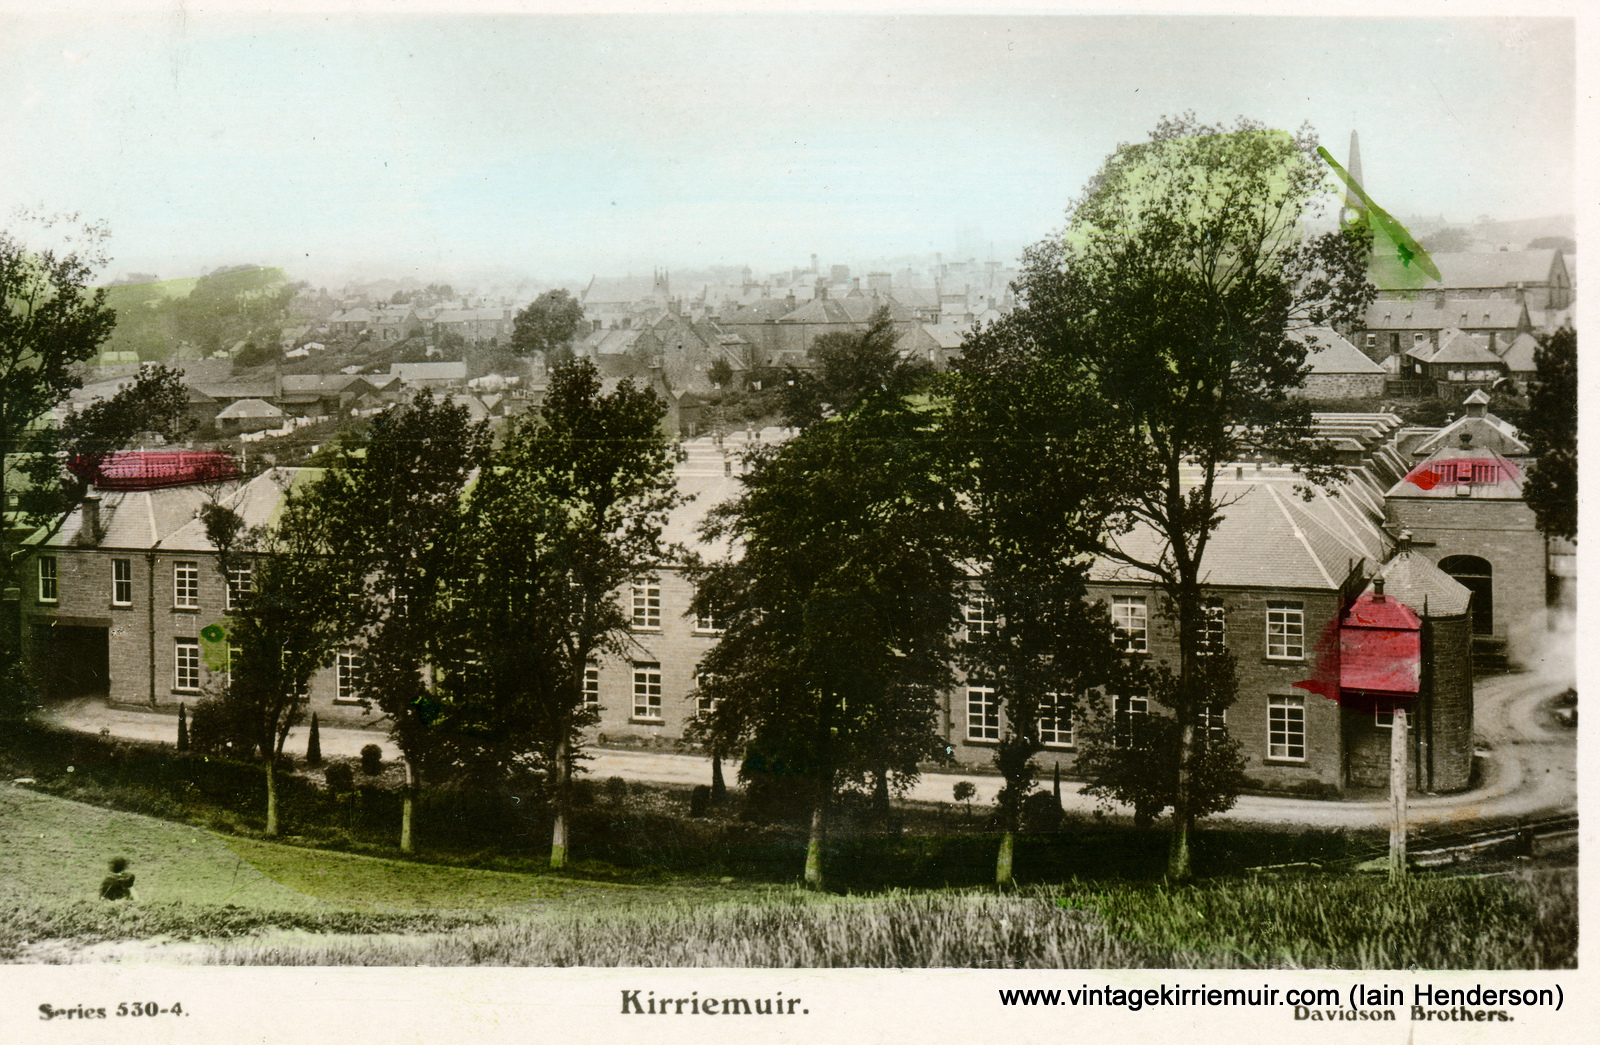 Kirriemuir from the Commonty, 1911